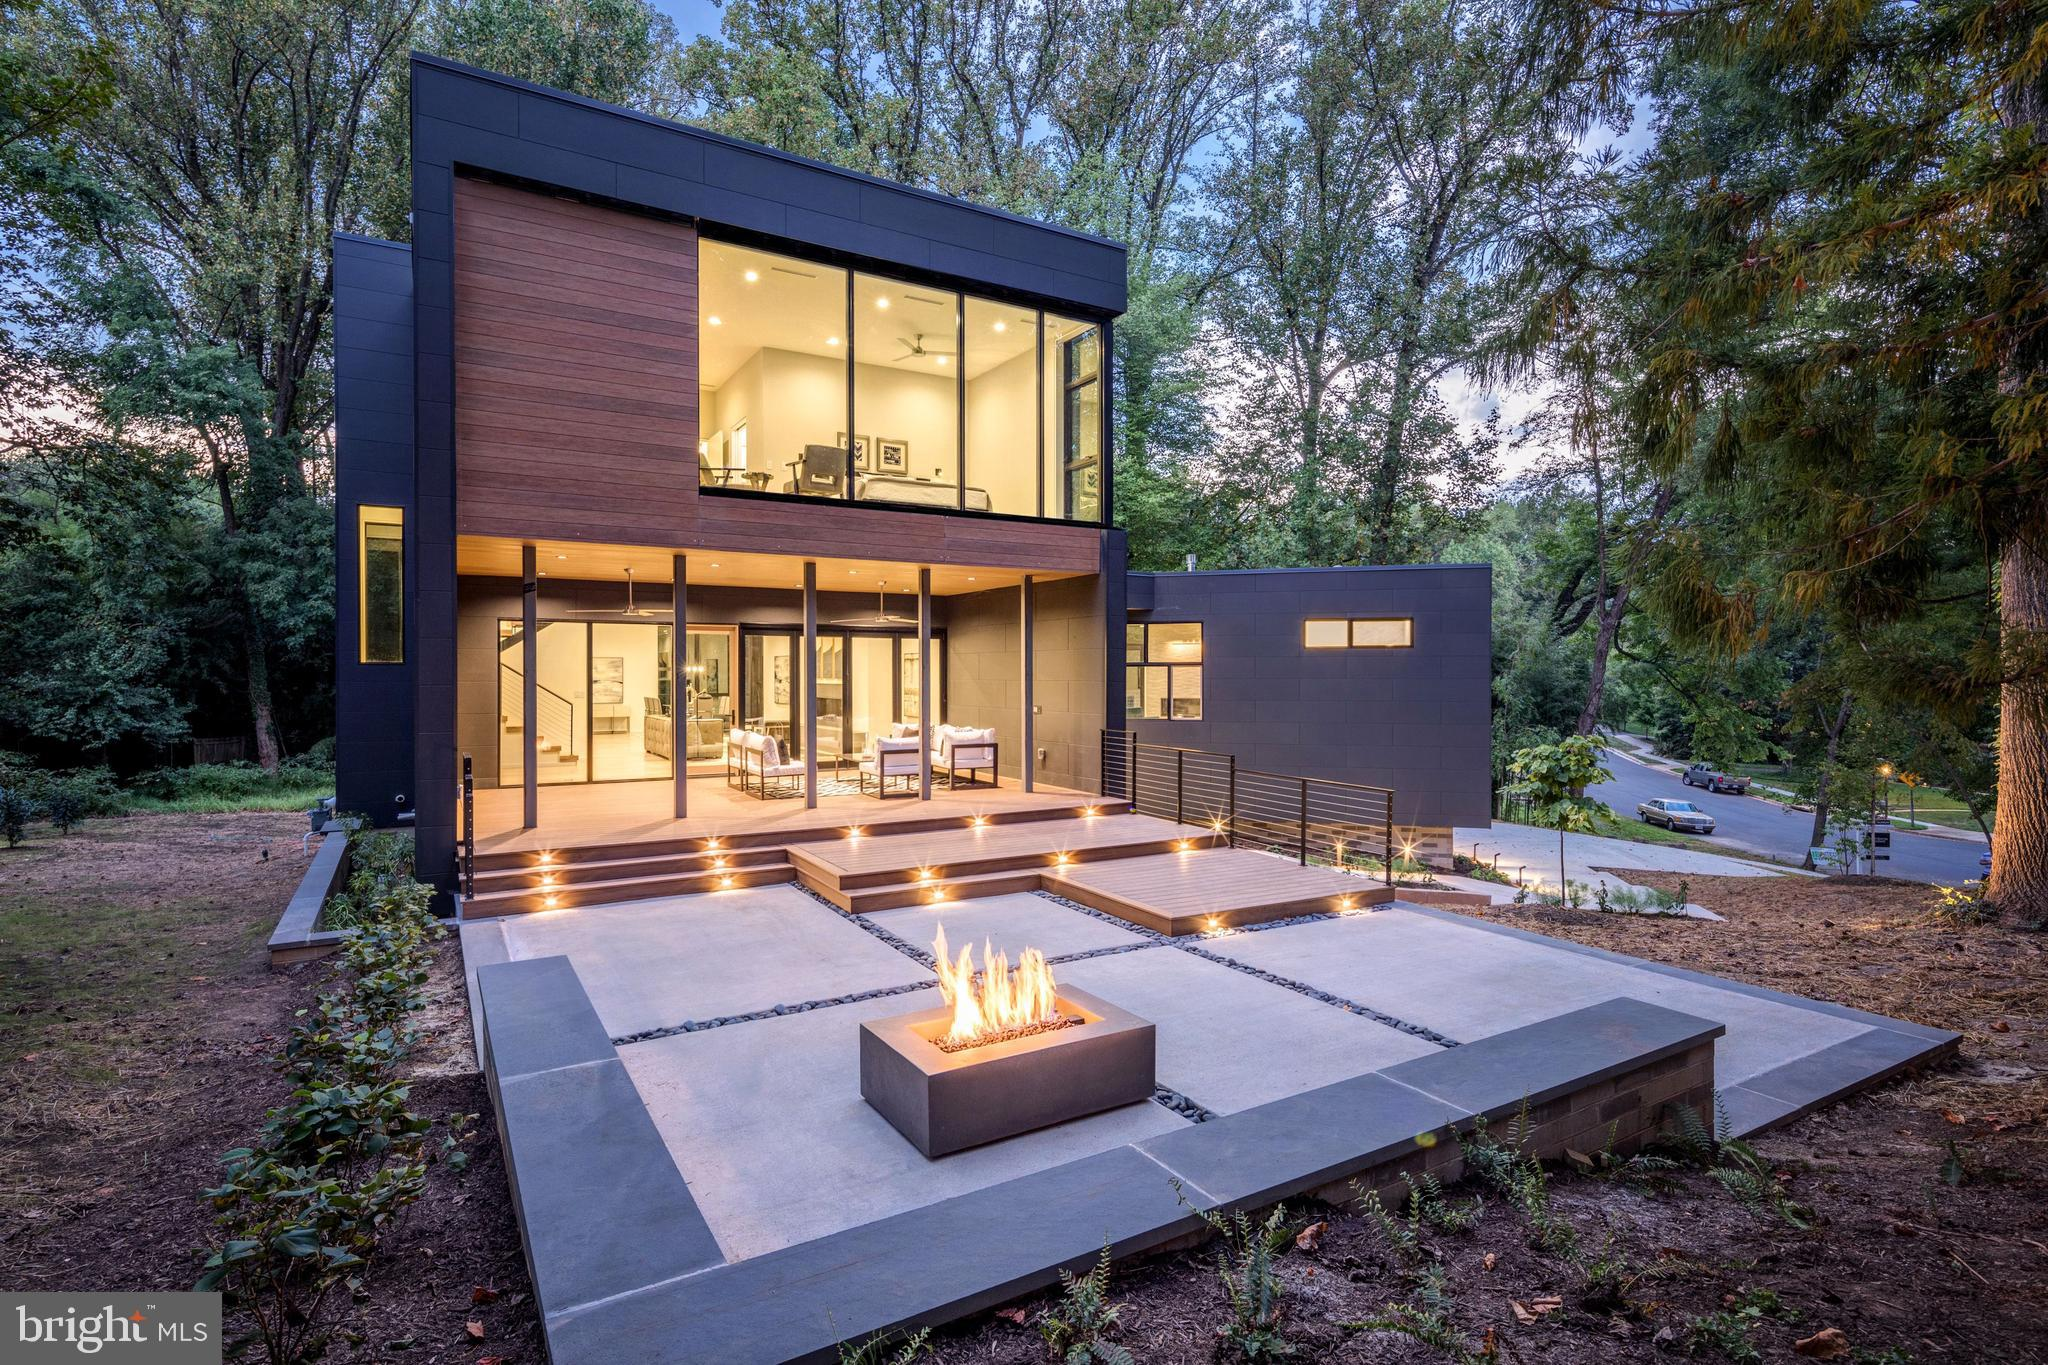 Open Sunday Noon - 3pm or by appointment. This custom, modern residence developed by T. White Construction and designed by Studio 27 Architecture is truly a one-of-a-kind masterpiece.  The architecture has been implemented specifically for this secluded, half-acre home site.  Three cascading volumes are oriented to maximize privacy and views of the wooded grounds while expansive windows provide abundant light, blending the experience of indoor and outdoor living.  Finishes and features are of the highest caliber.  The designer kitchen offers Scavolini cabinetry, Miele appliances, & CaesarStone counters.  White oak floors throughout out main and upper levels have been sanded in place.  Elegant bathrooms feature wall-mounted dual-flush Kohler toilets & Duravit vanities.  Multiple outdoor living spaces include a spacious screened-in living room overlooking a patio with fire feature while a floor-to-ceiling folding glass wall opens to interior living area.  10' ceiling heights, optional elevator, over-sized 2-car garage with electric charging pre-wire and a main-level bedroom suite are just a few of the added, unique features of this fine home.